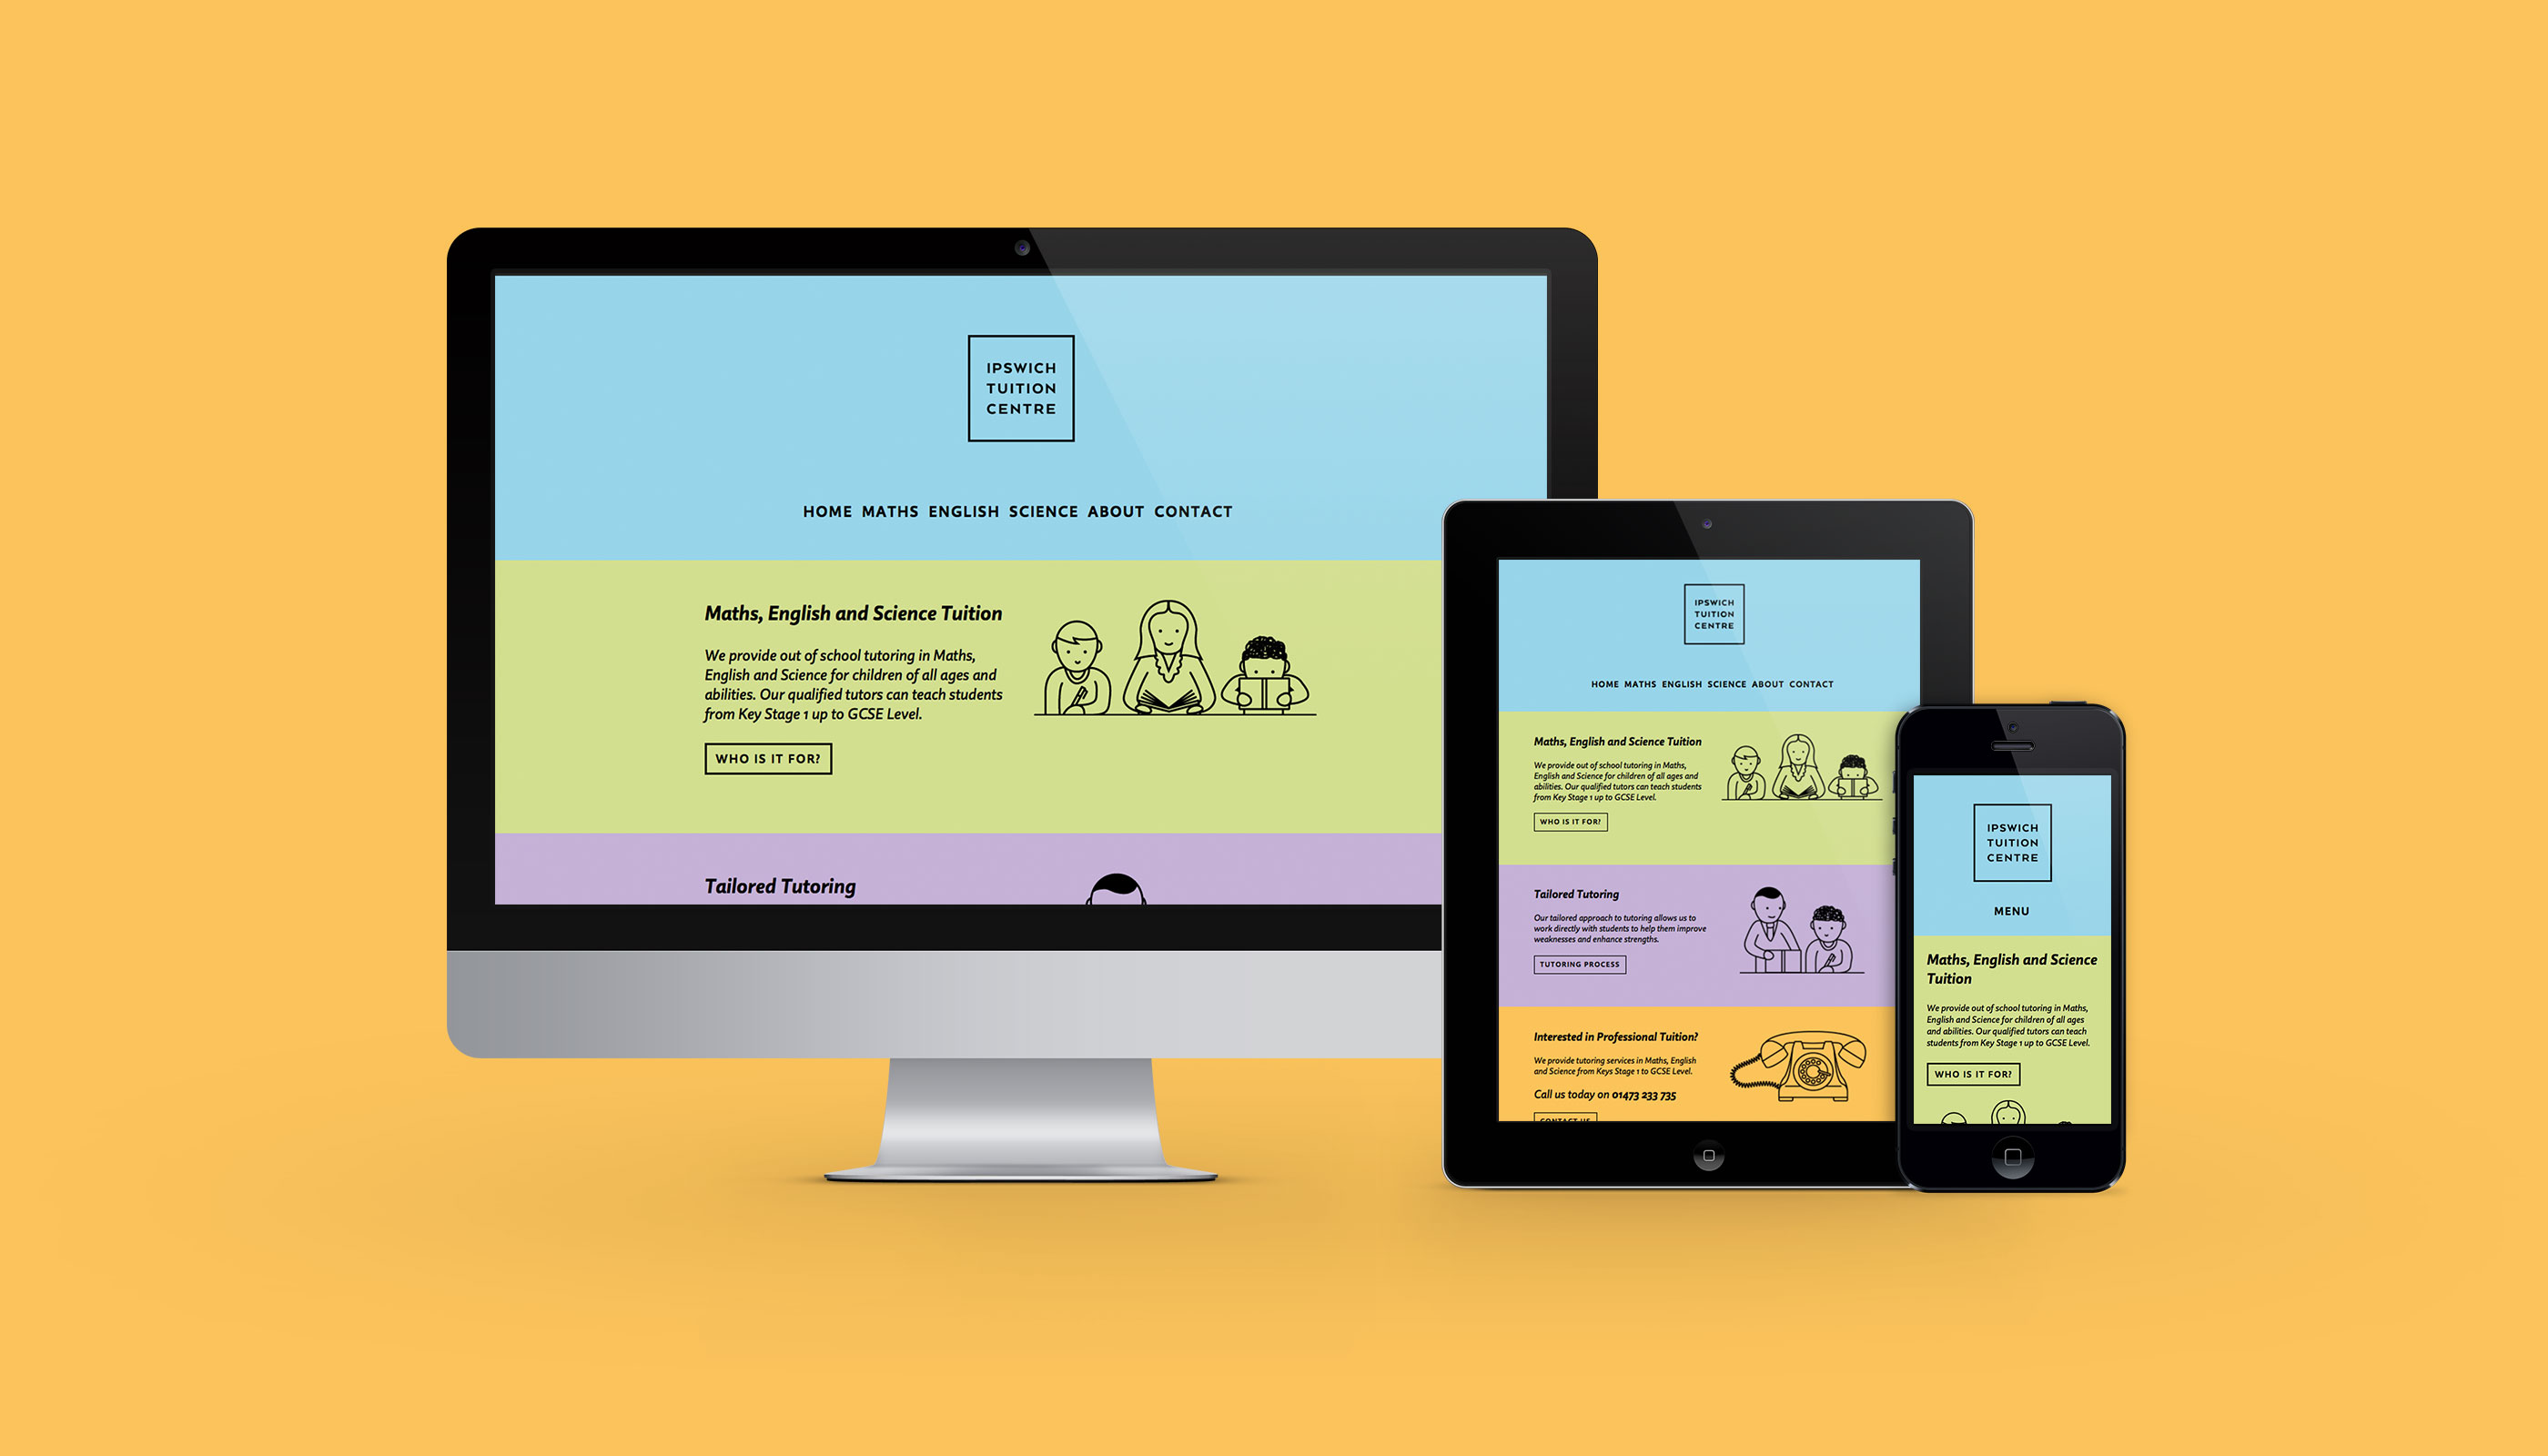 Responsive website design for Ipswich Tuition Centre.